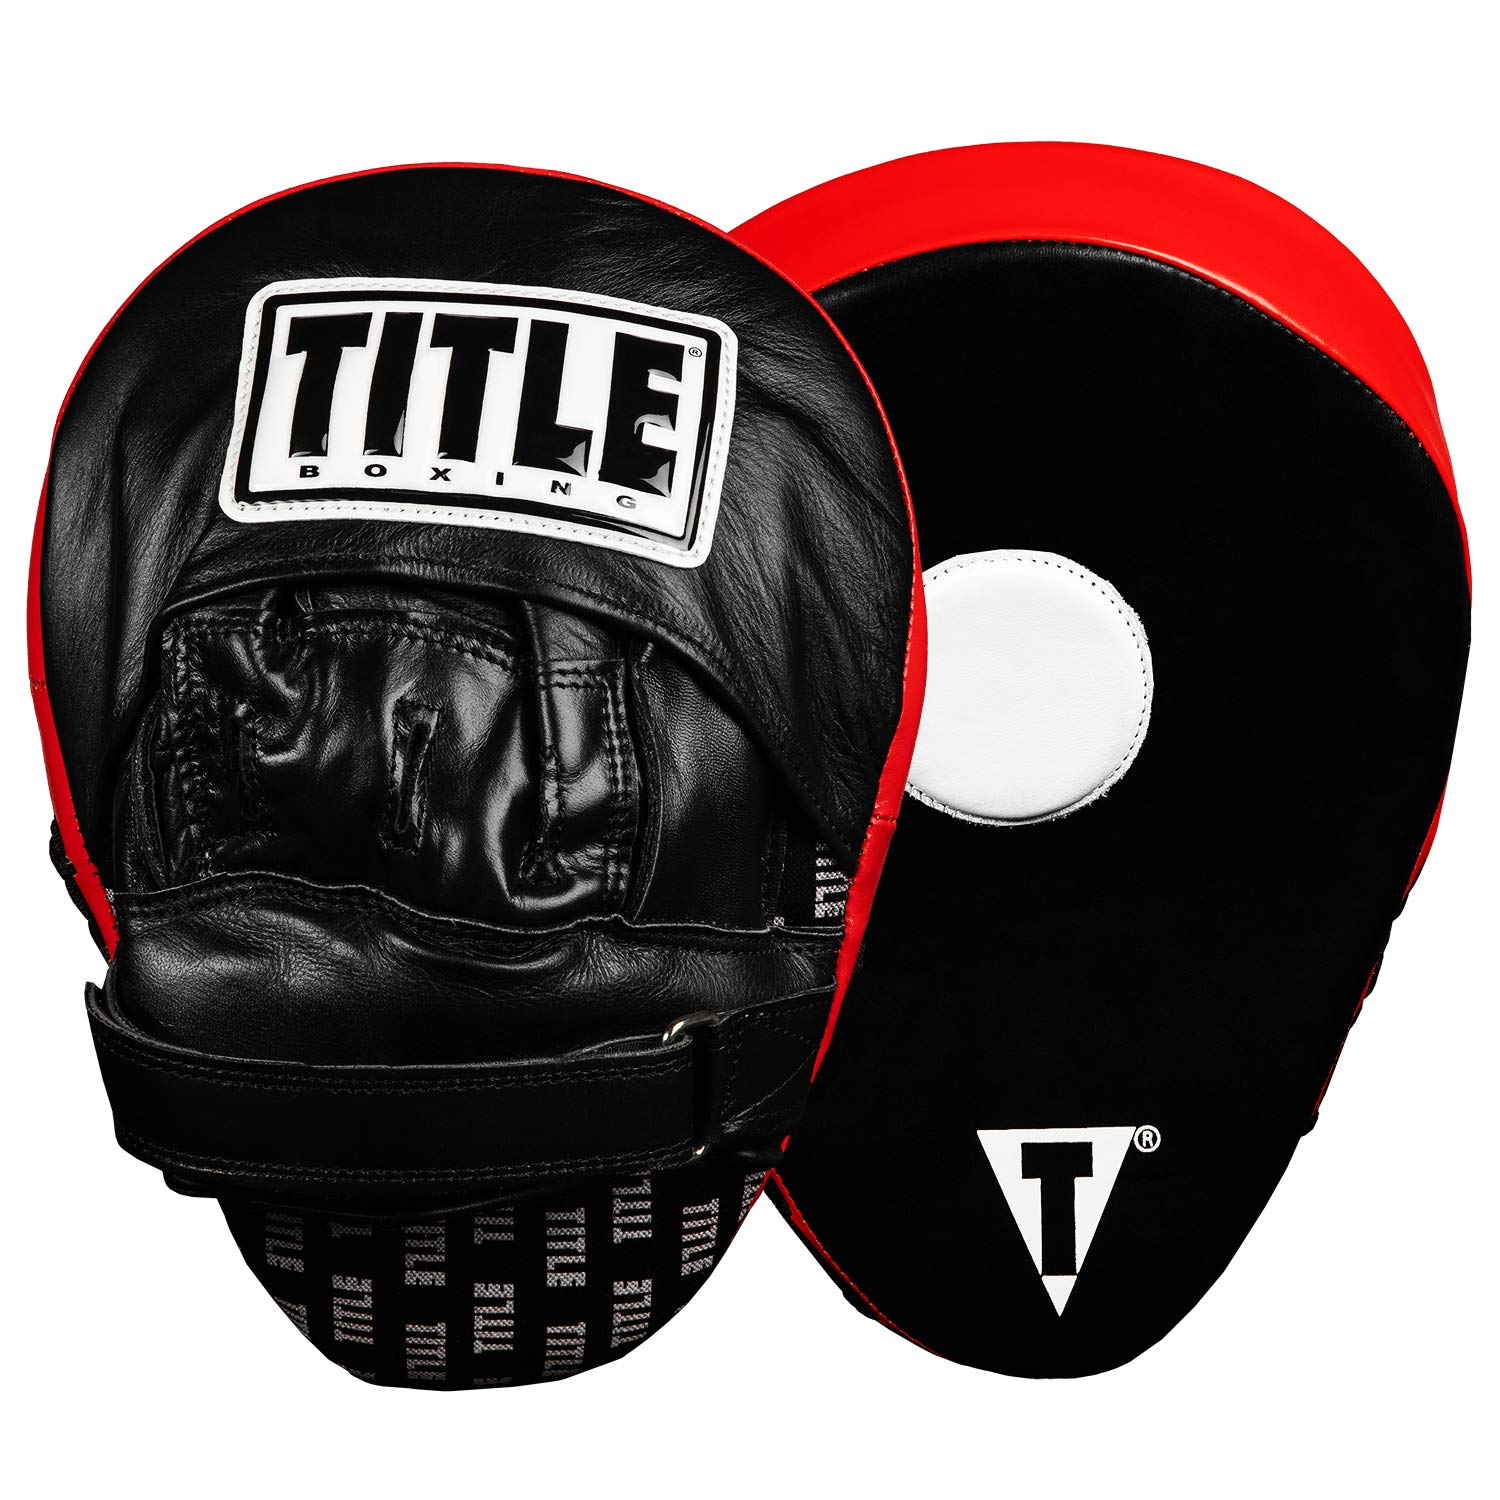 タイトルUltra Lite incredi-ball Lite Mitts Punch Mitts incredi-ball B001BQ1S9E, カイホーク:175c1124 --- capela.dominiotemporario.com